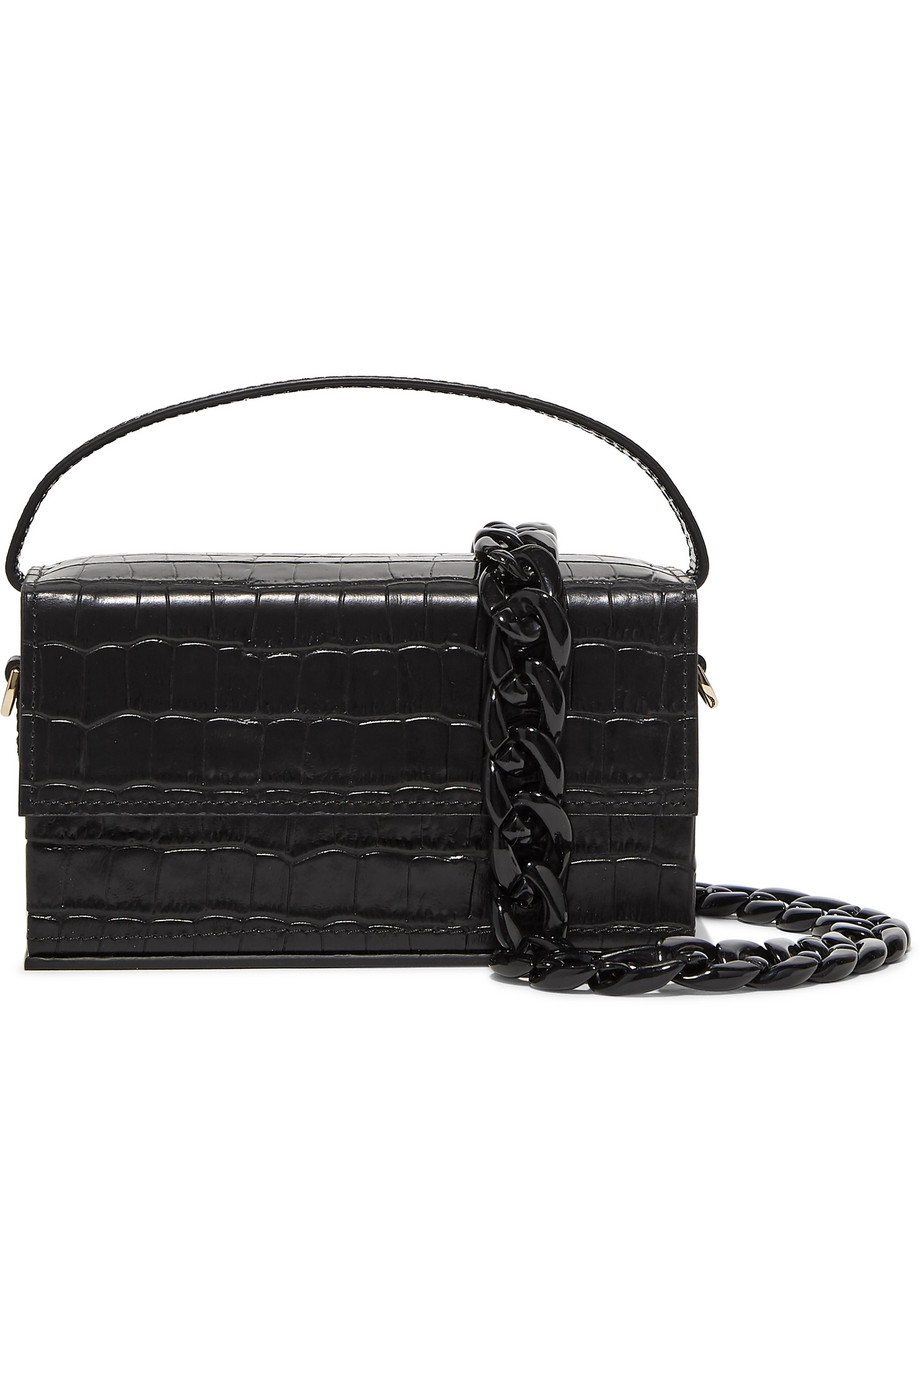 Exact Product: Ida croc-effect leather clutch, Brand: L'Afshar, Available on: net-a-porter.com, Price: $815